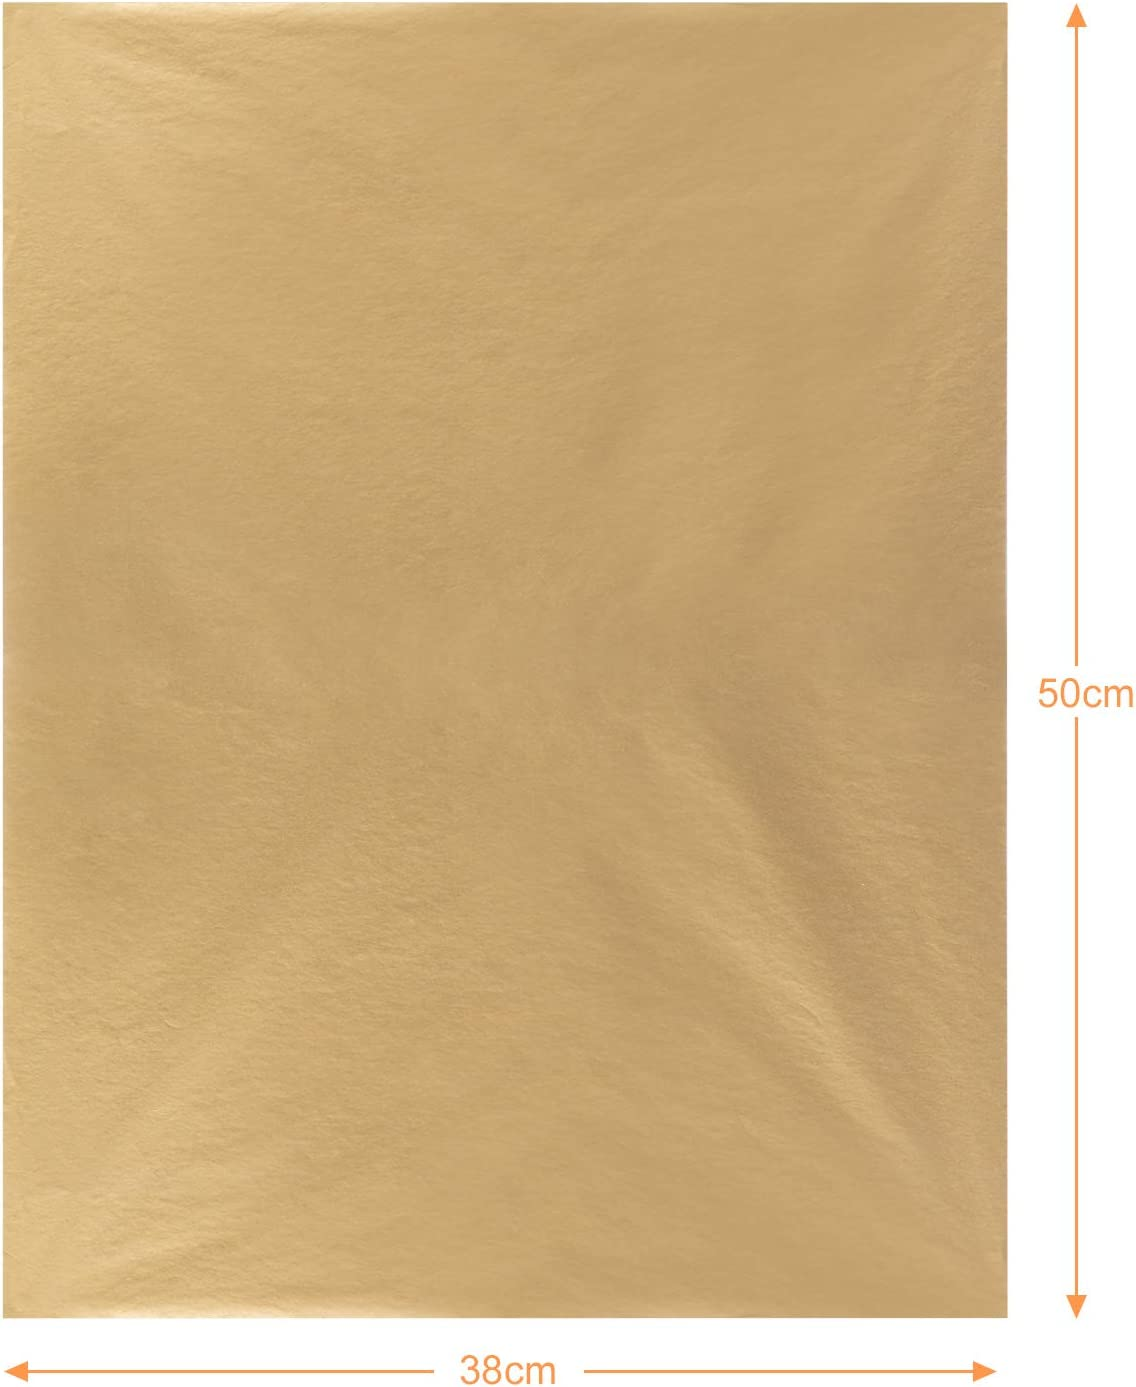 Naler 60 Sheets Gold Tissue Paper Gift Wrap Paper for DIY Crafts Birthday Wedding Party Christmas Decoration 15 x 20 Inches